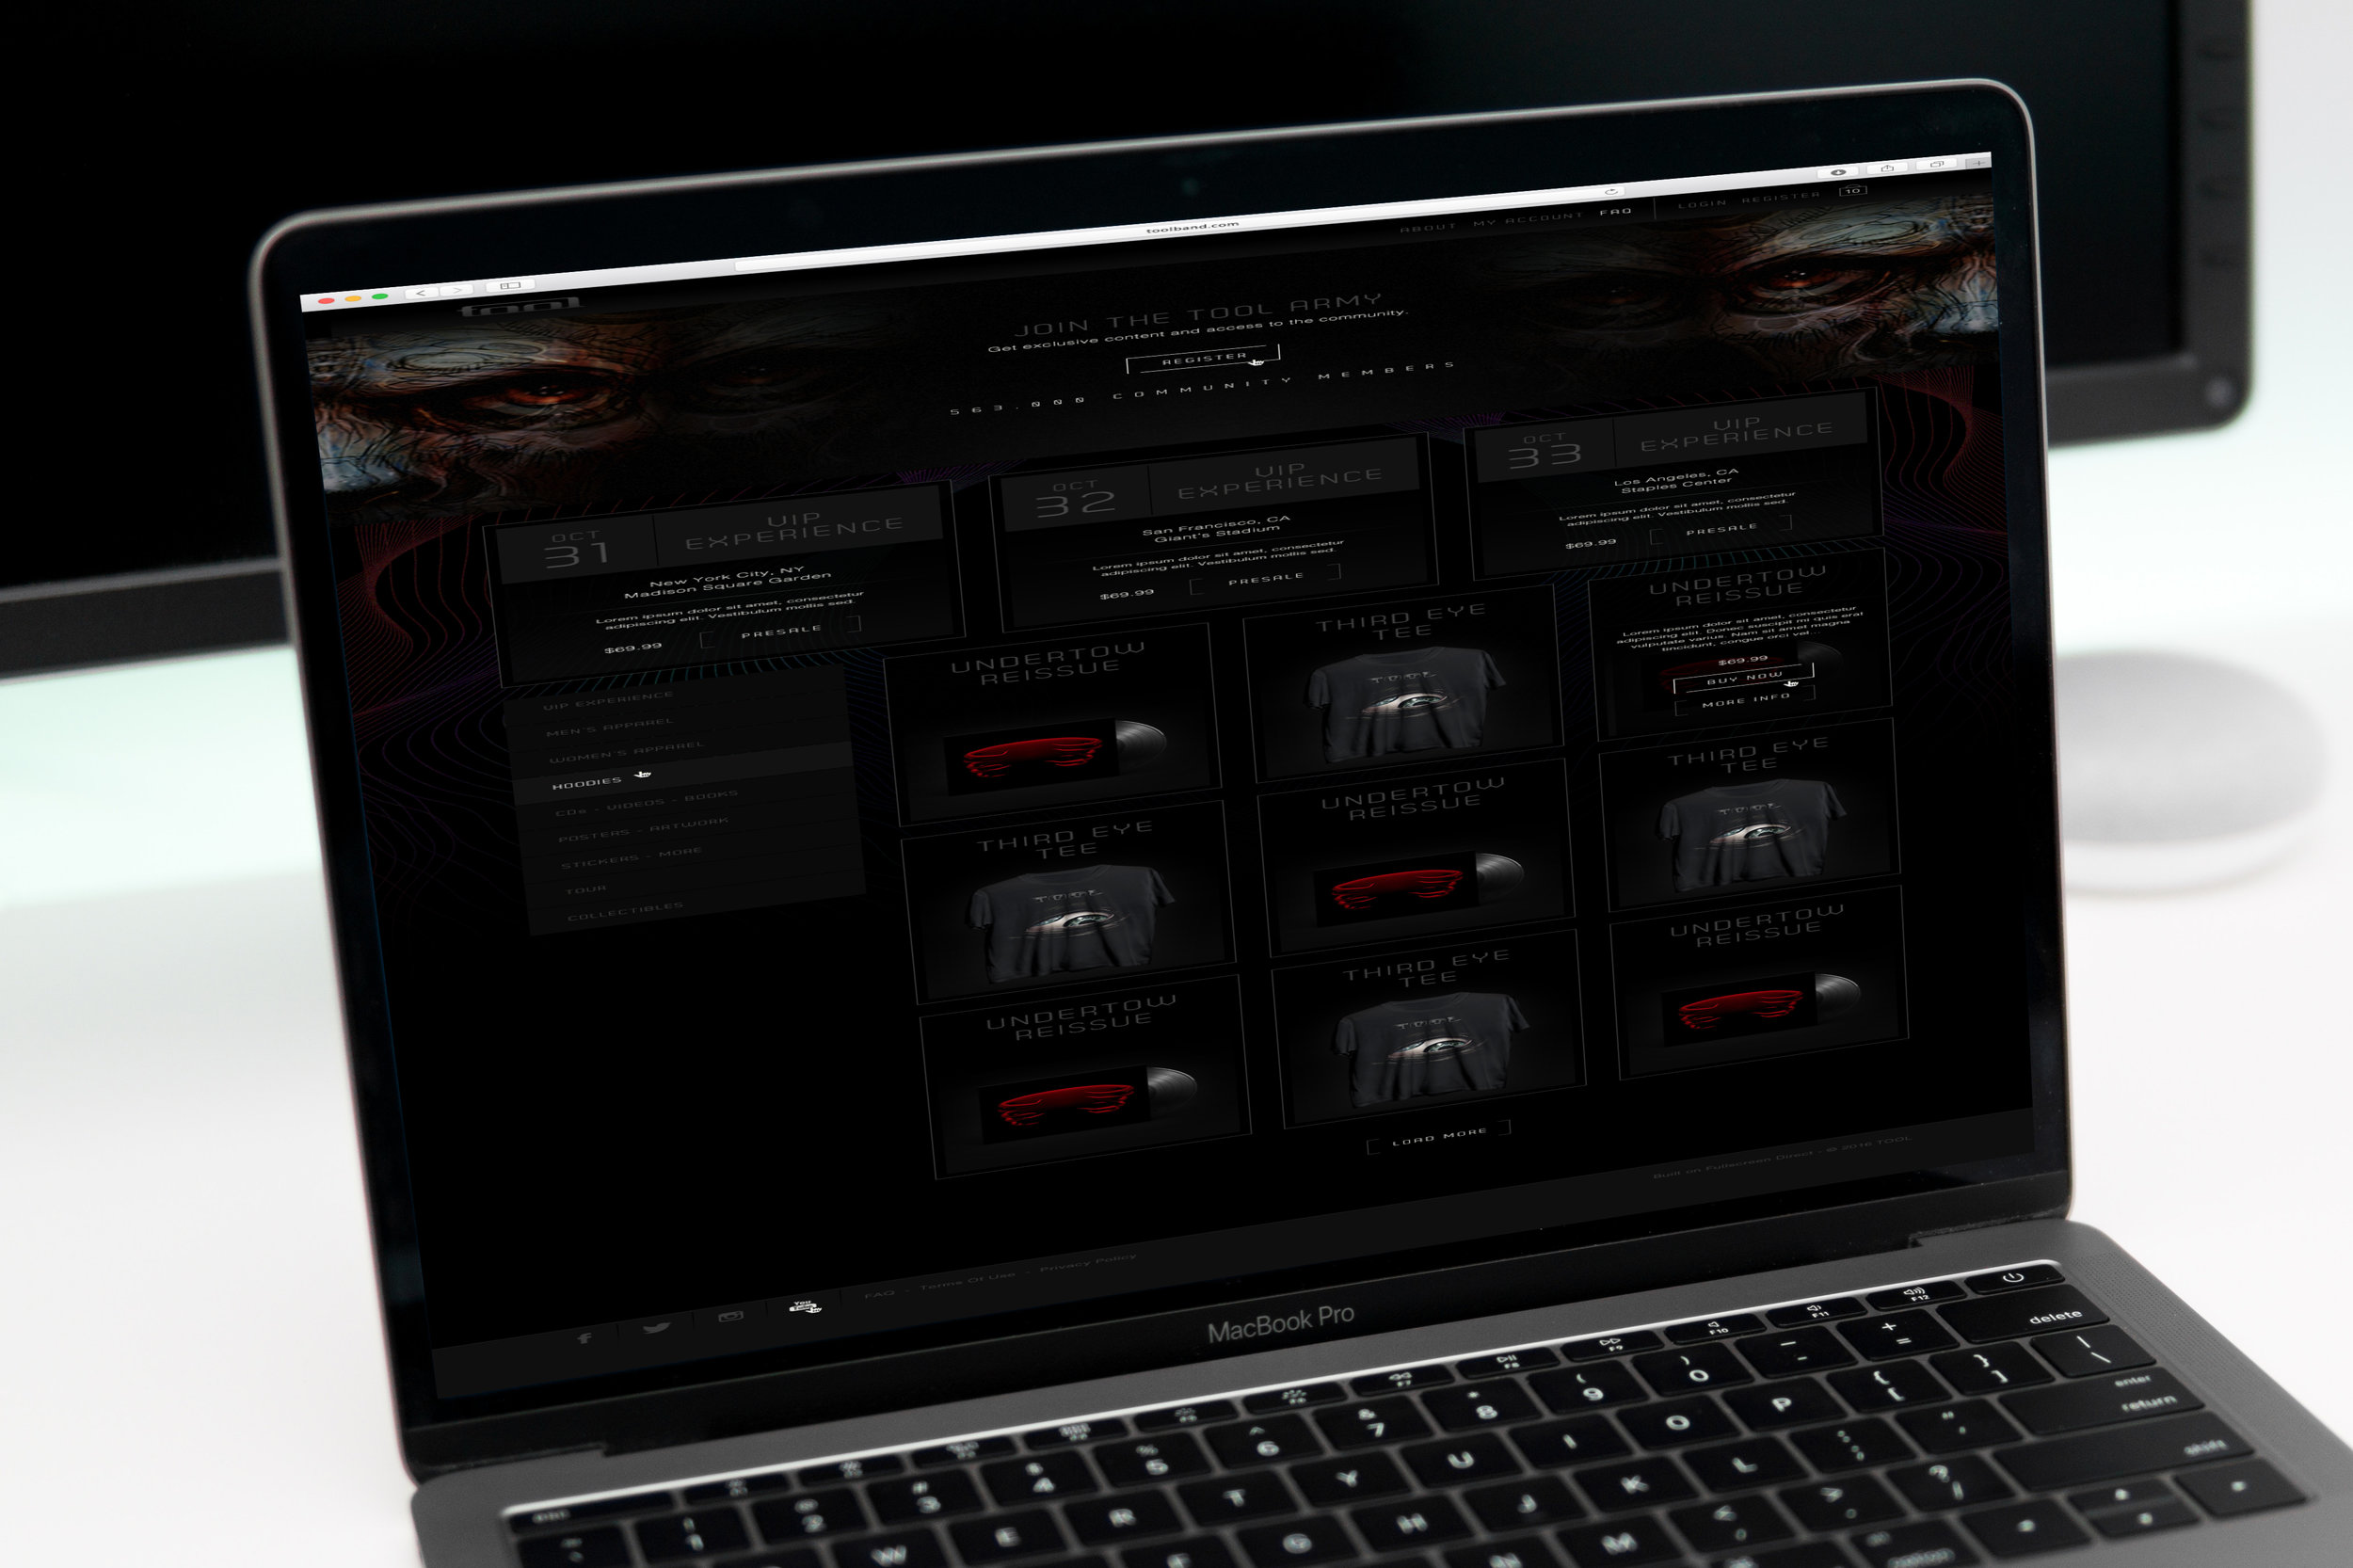 Tool close-view-of-macbook-pro-on-white-desk.jpg